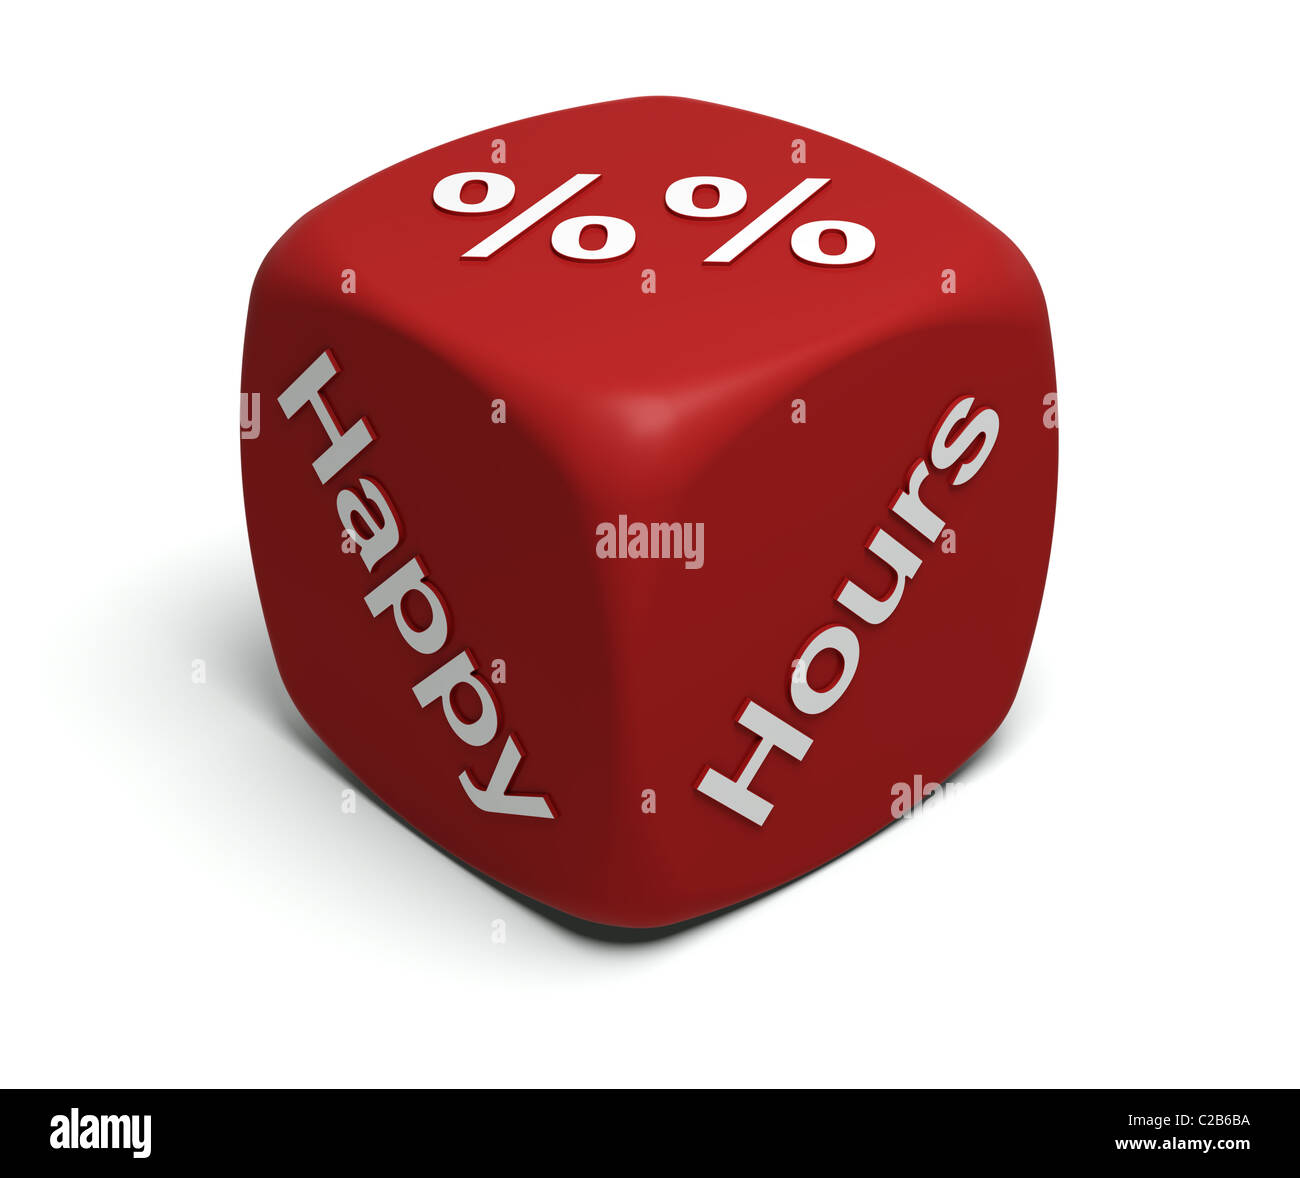 Red Dice with words Happy, Hour and Percent symbols on faces - Stock Image